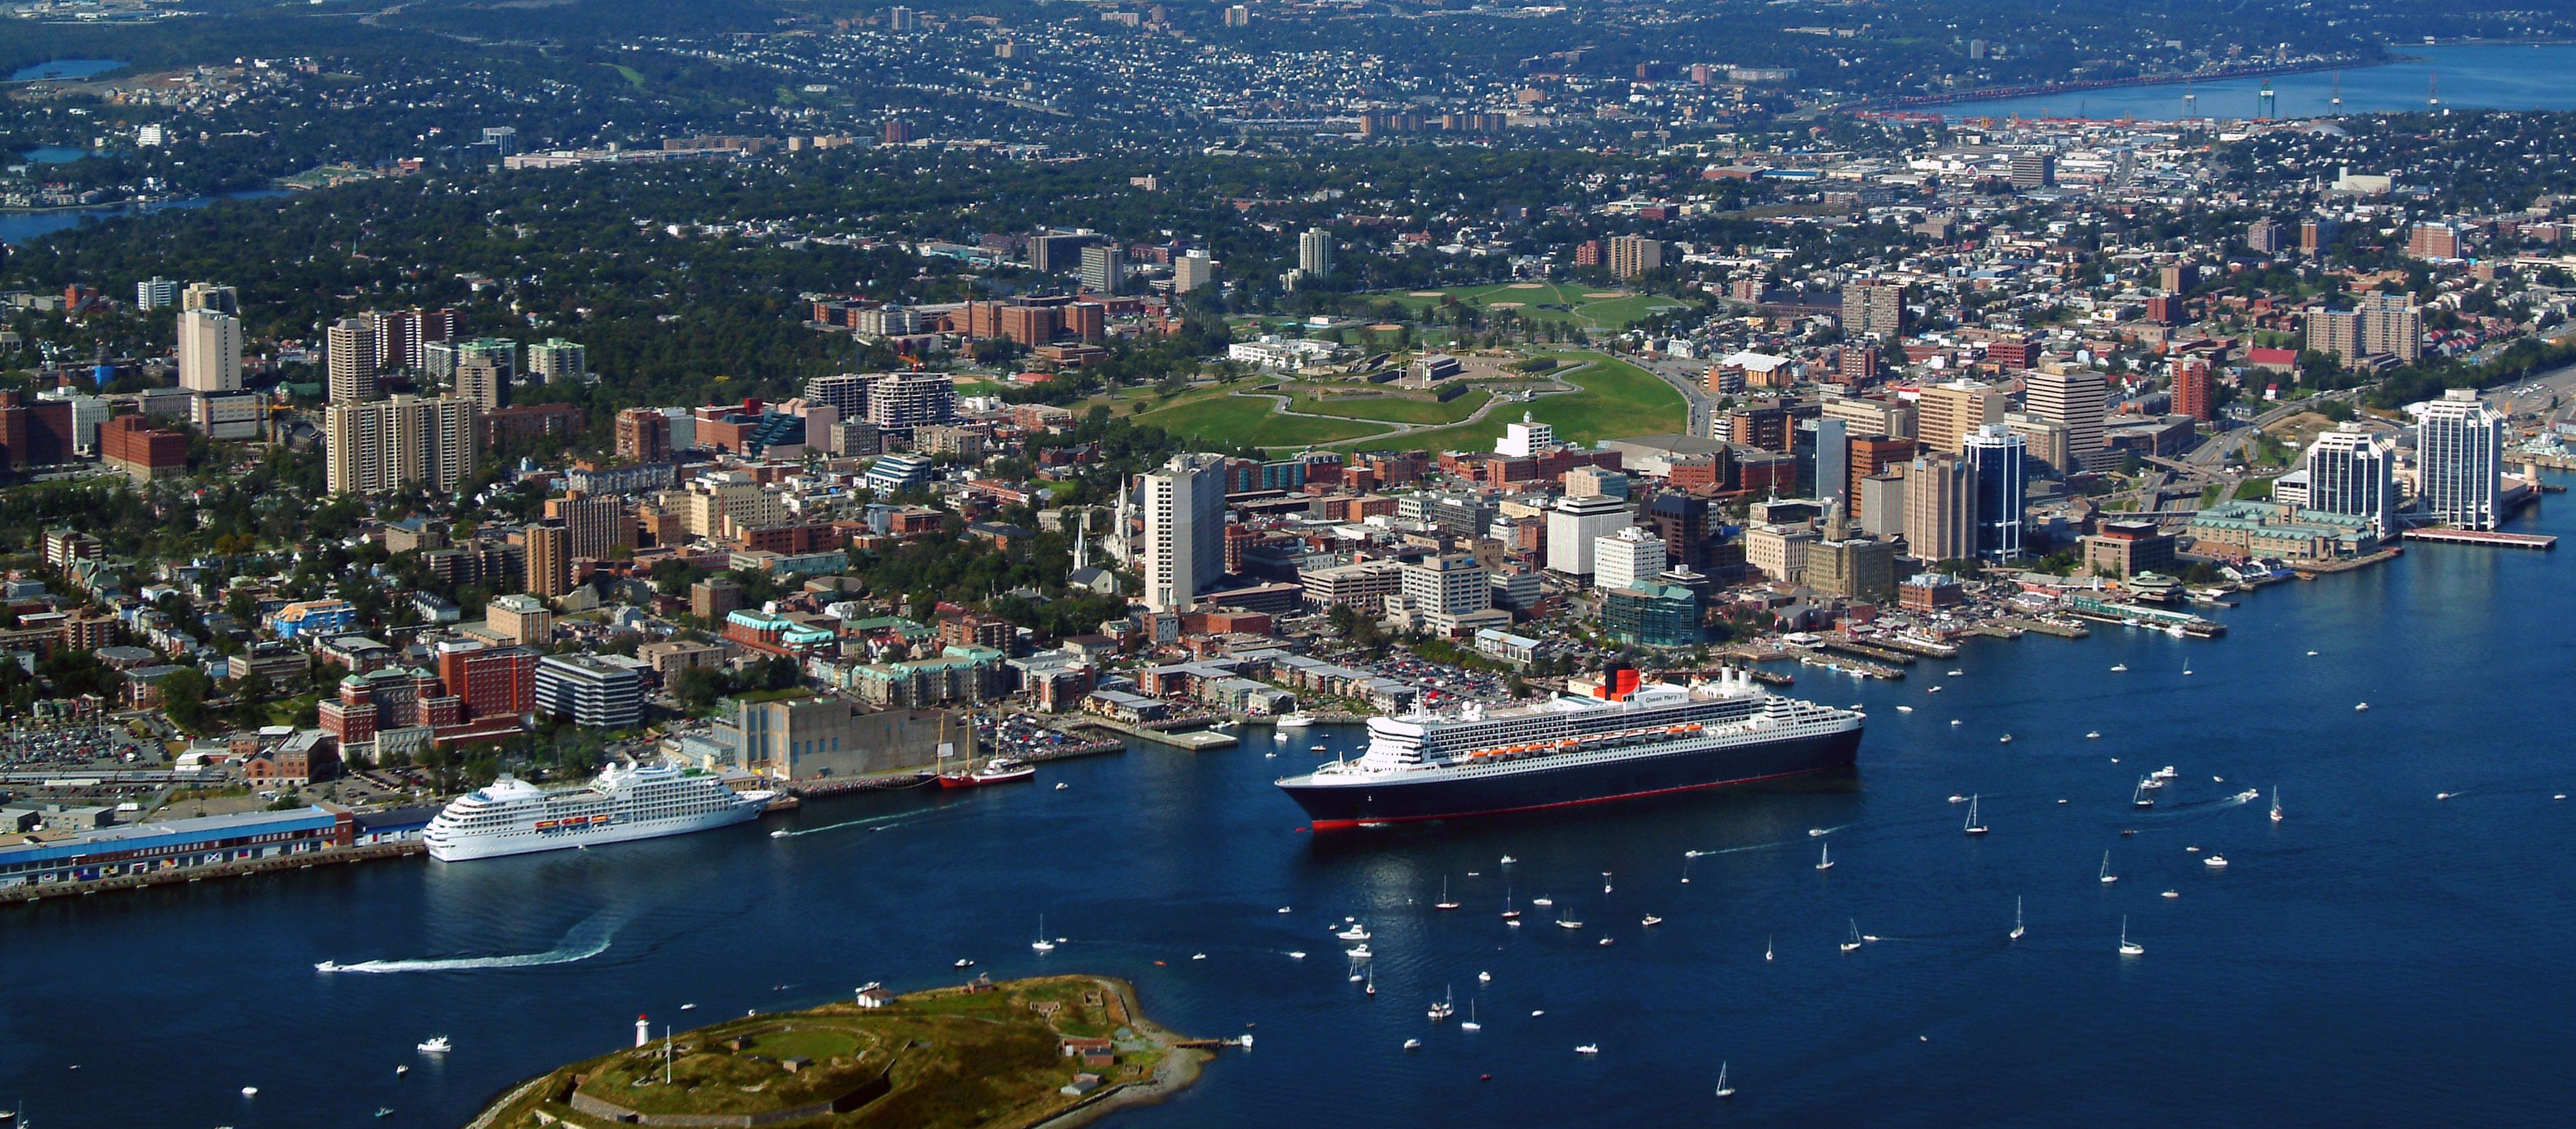 Queen Mary 2 Halifax Aerial